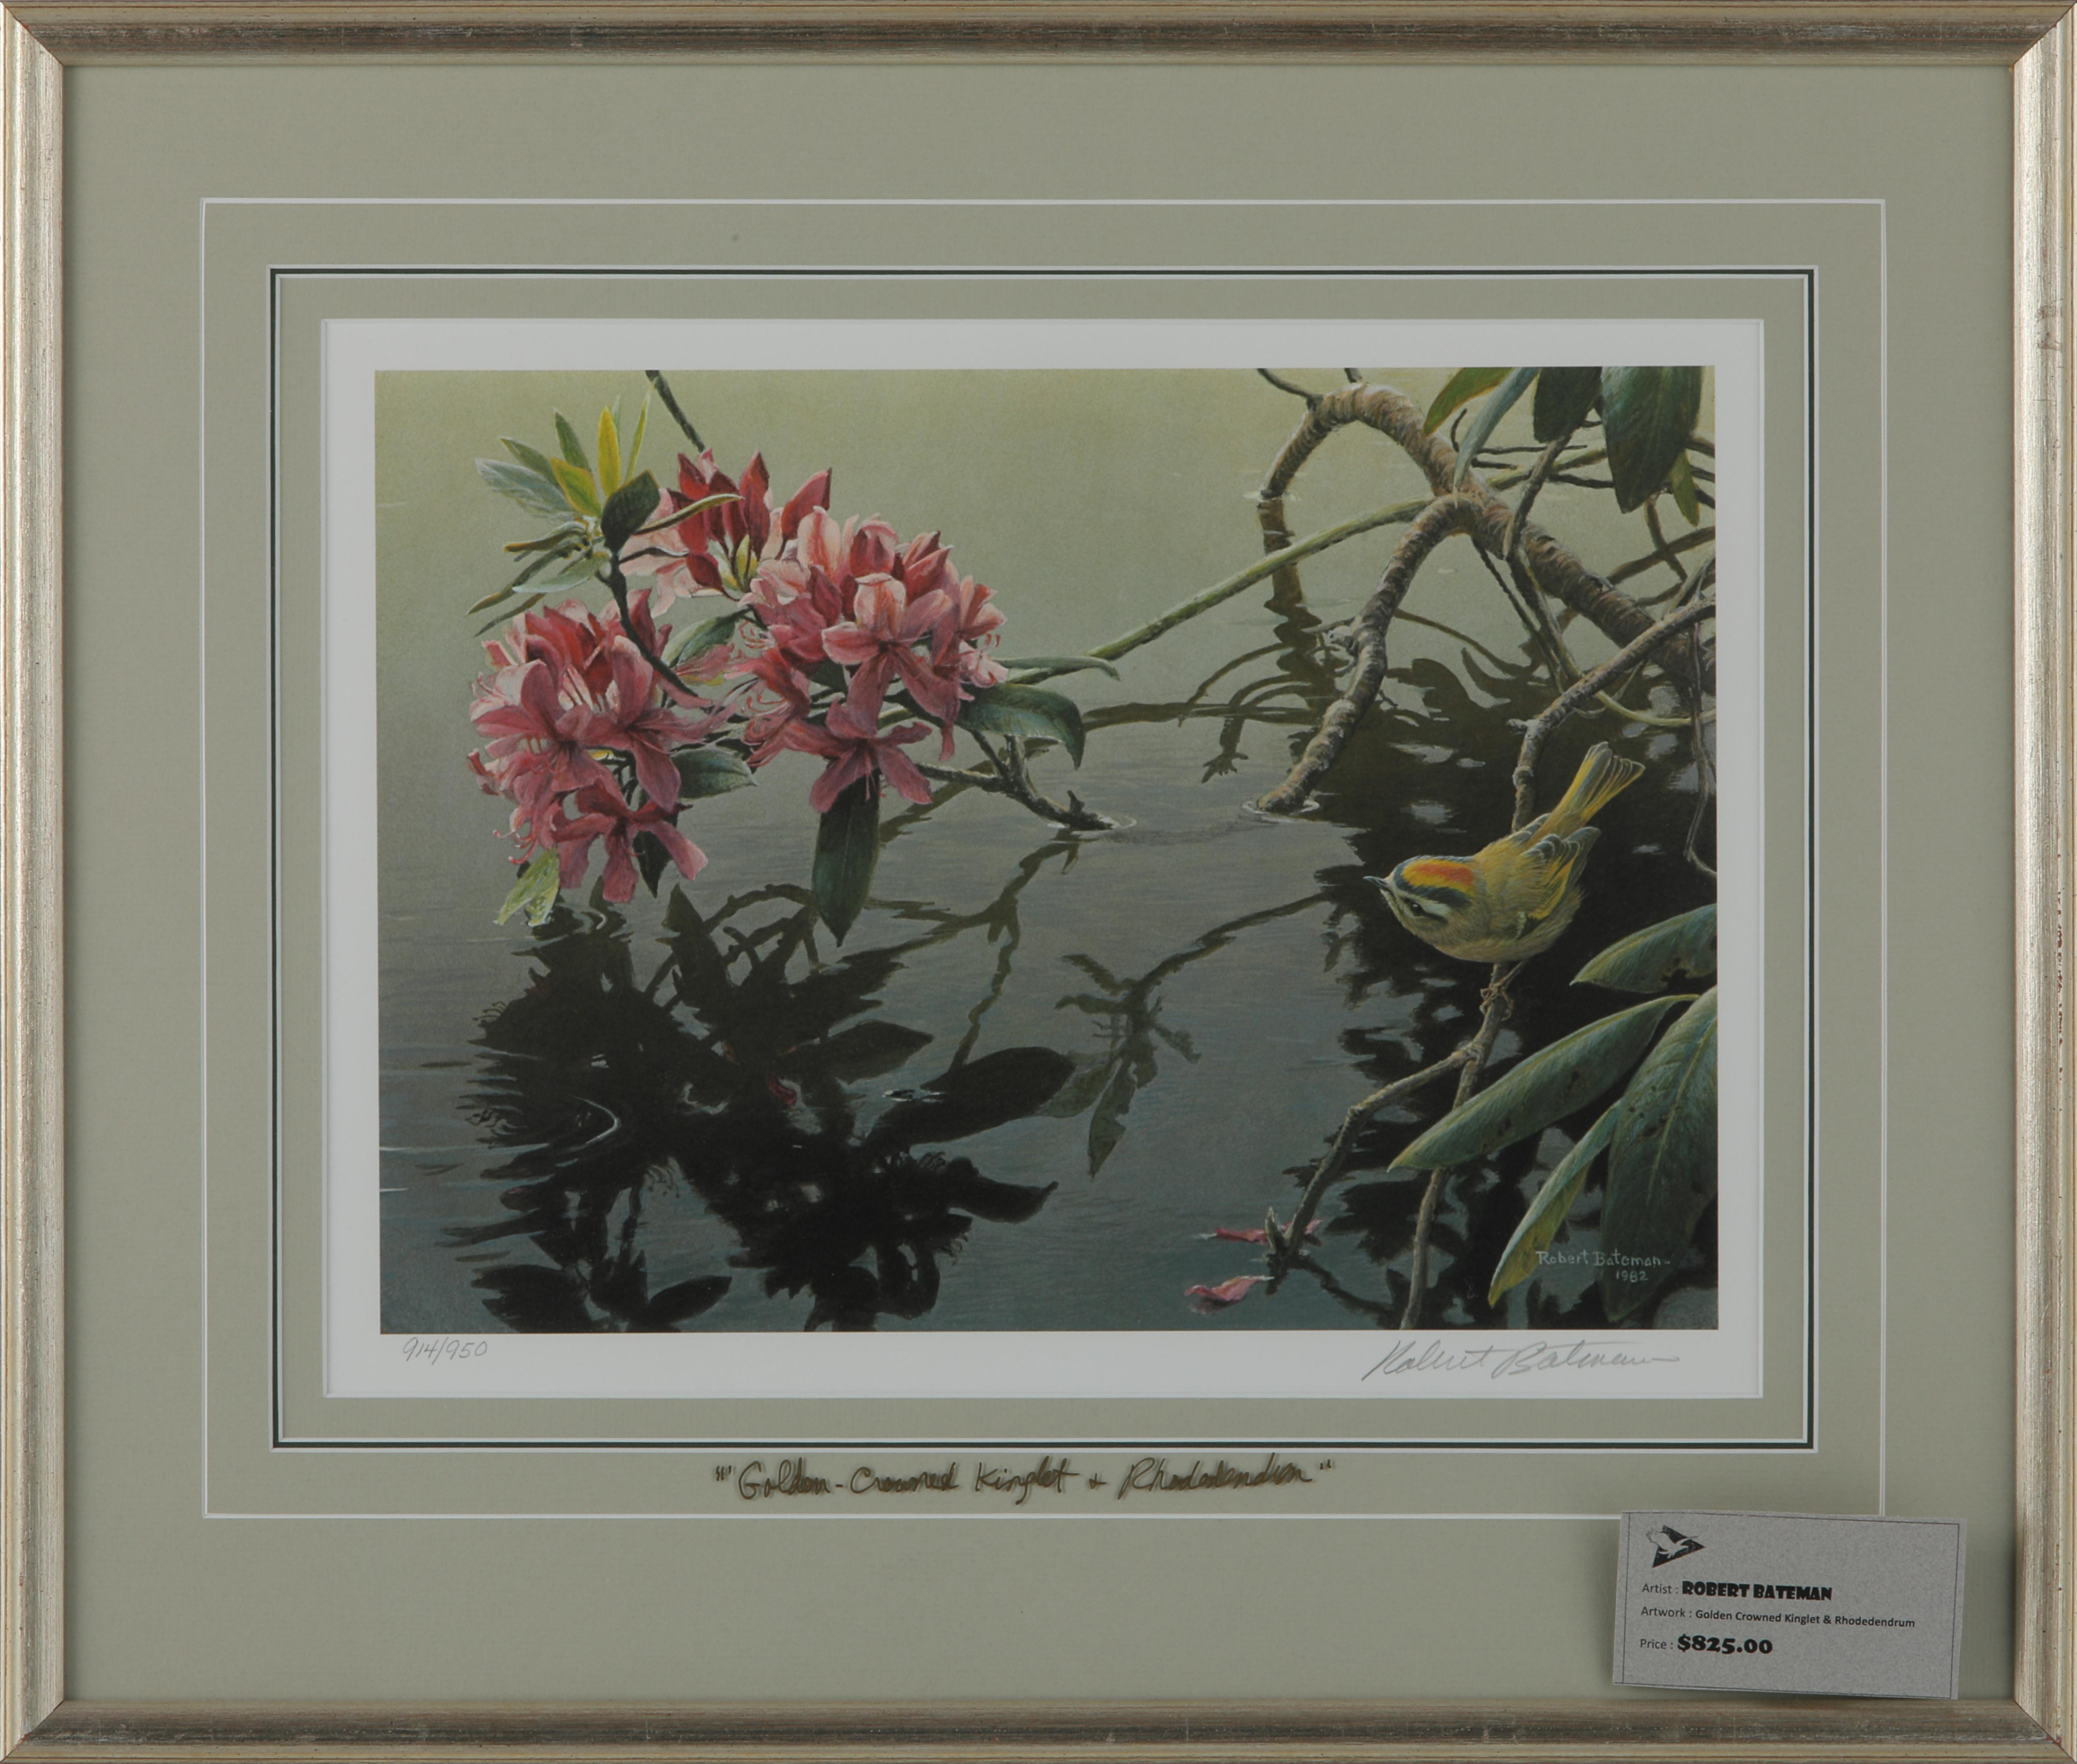 """Robert Bateman's """"Golden-Crowned Kinglet And Rhododendron"""" Framed Limited Edition Print"""